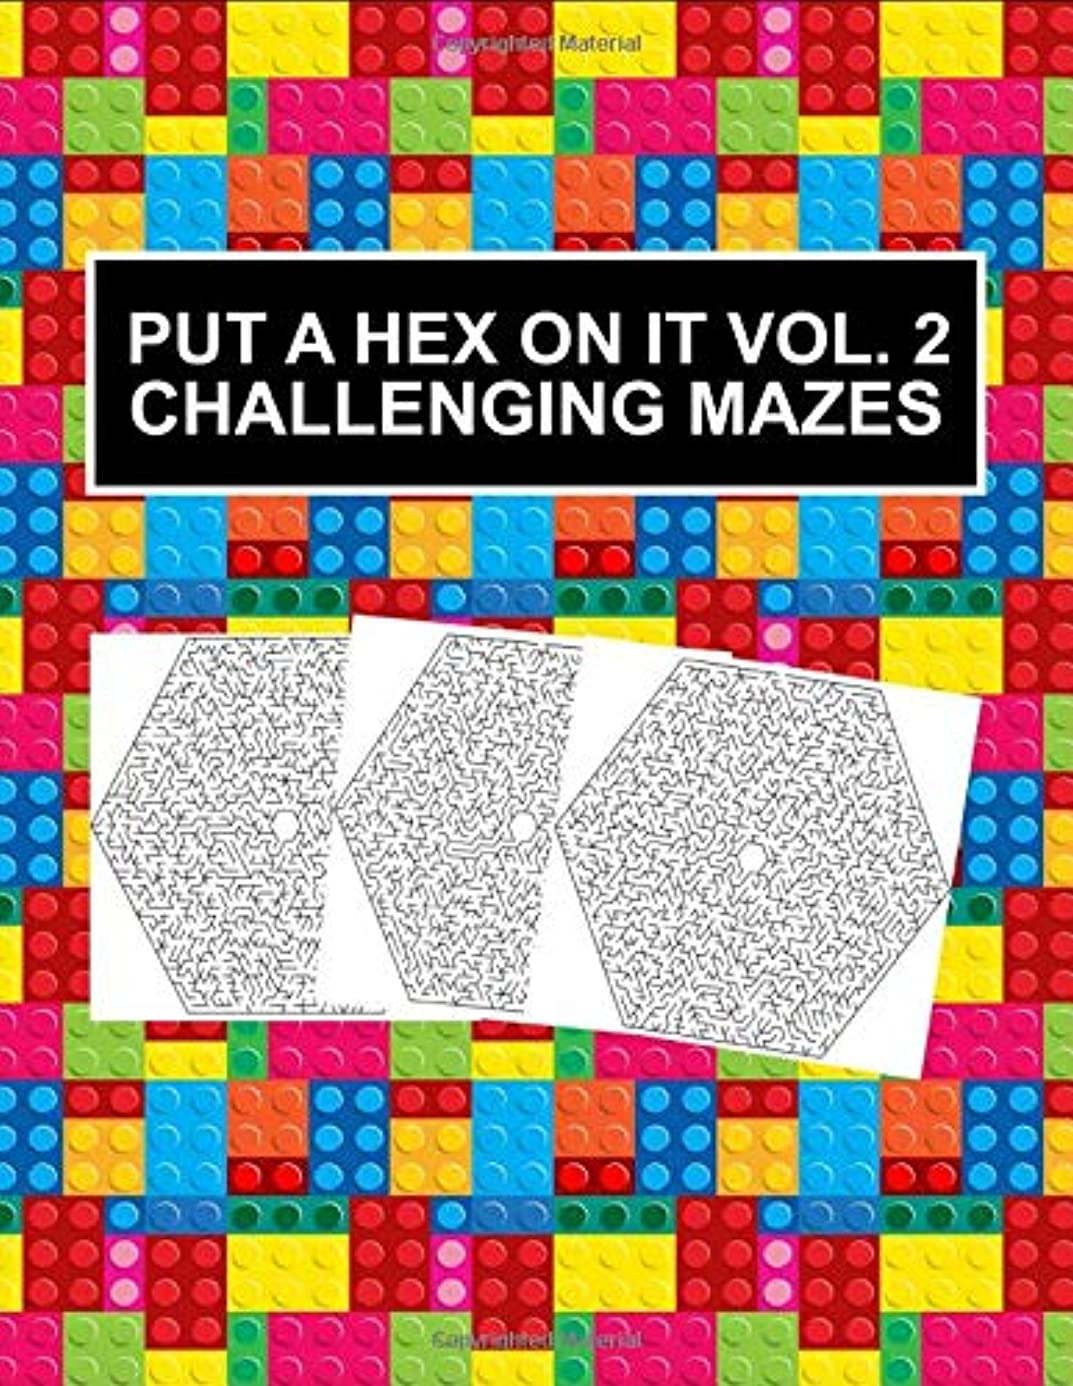 Put a Hex On It Vol. 2 Challenging Mazes: Maze Puzzles Activity Book Brain Games for Adults, One Puzzle Per Page, Large Print for Seniors and Low Vision